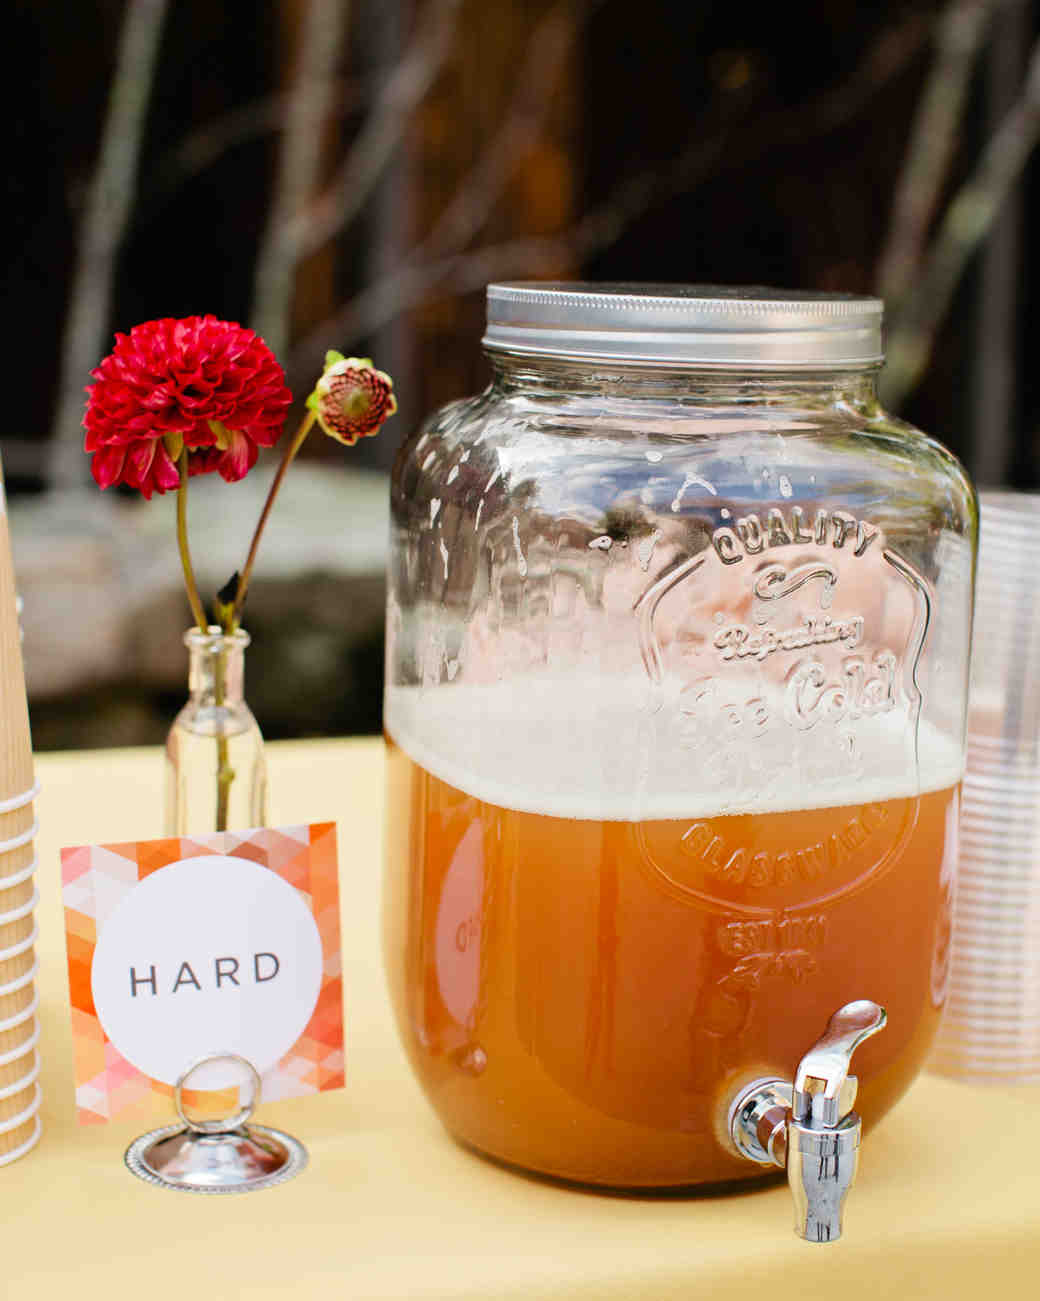 Hard Cider Dispenser